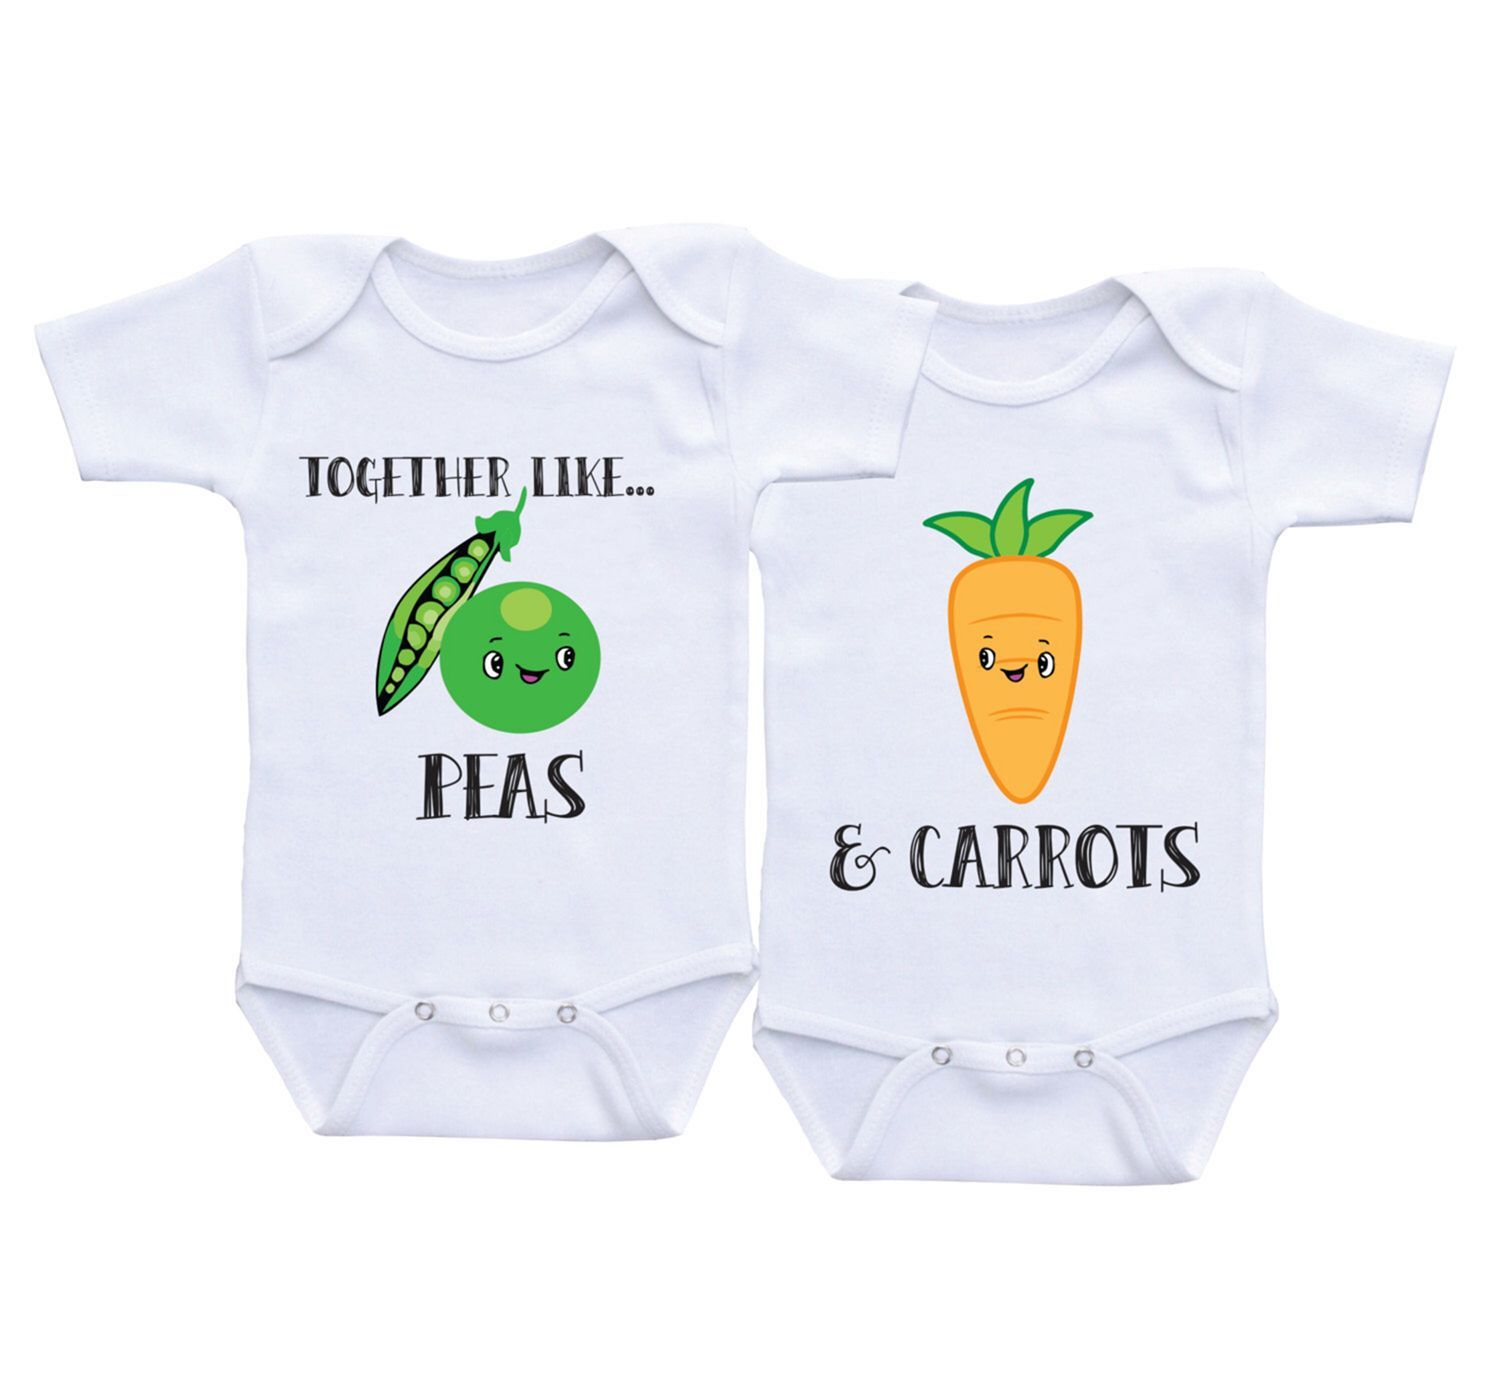 55 Best Twin Newborn Outfit Collections